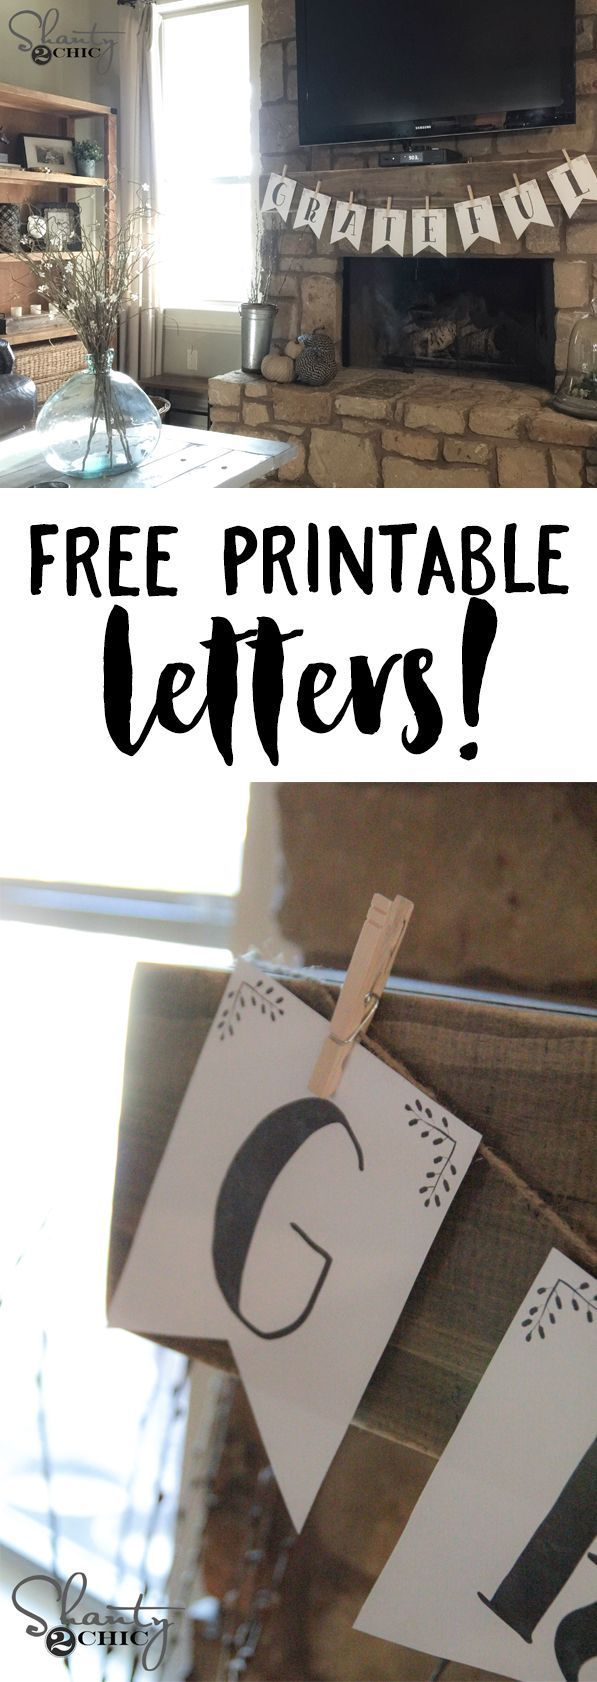 FREE printable letter banners! You can print the entire alphabet for free... Great for holidays and parties! www.shanty-2-chic...